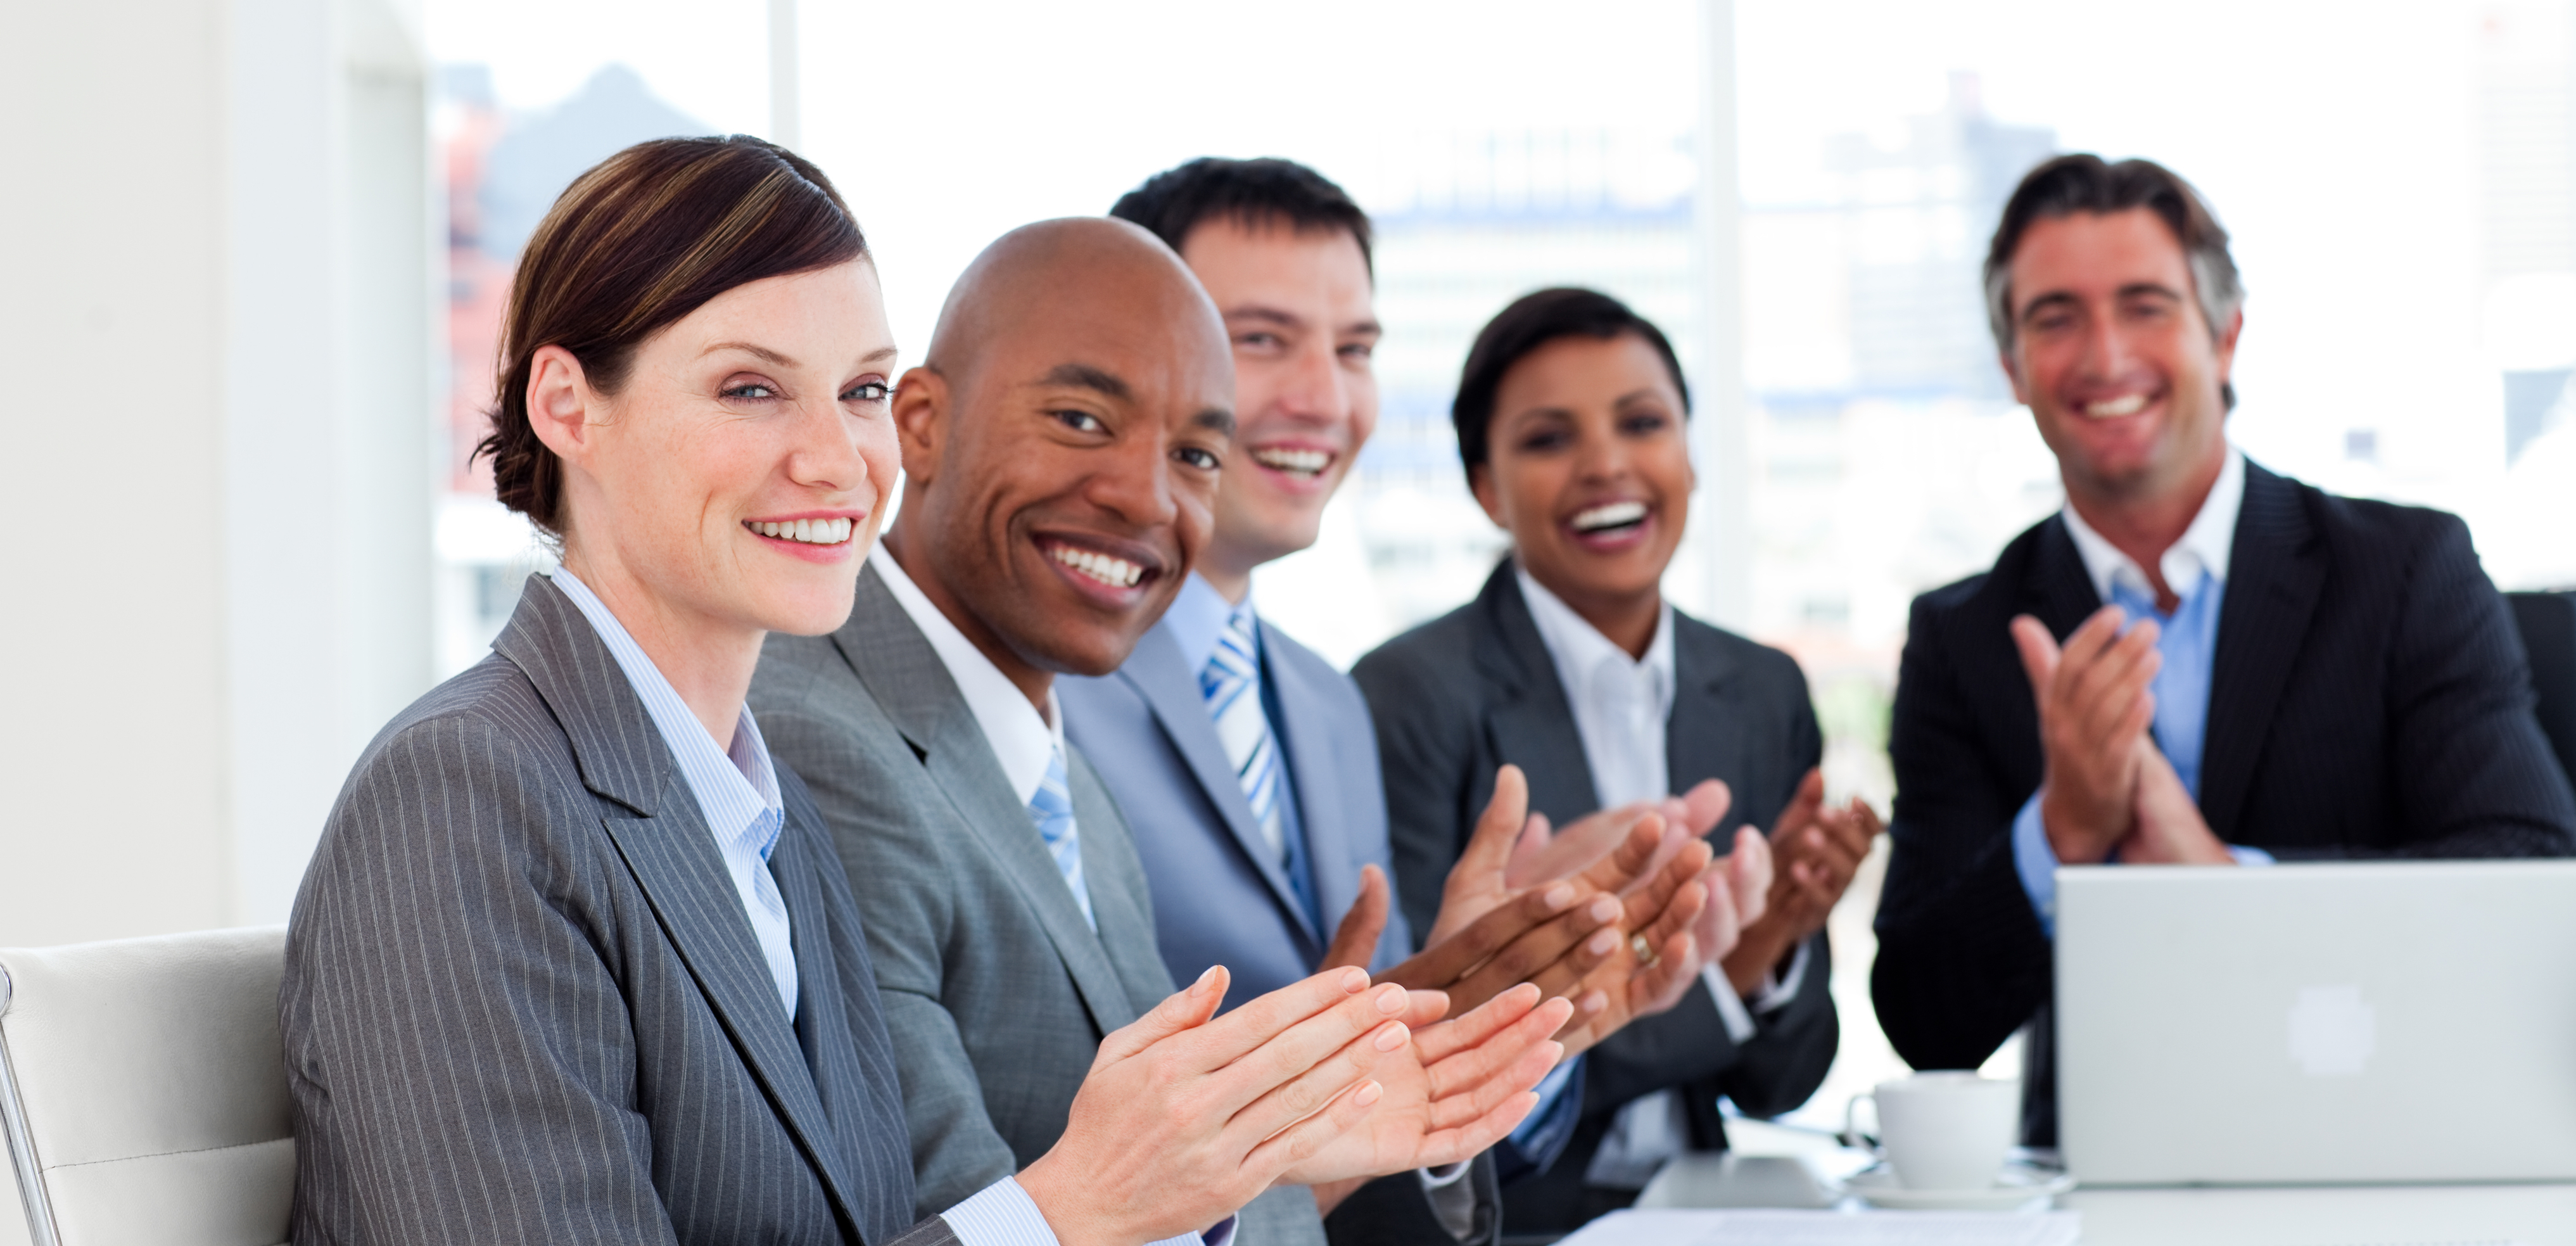 Portrait of an international business team clapping in a meeting